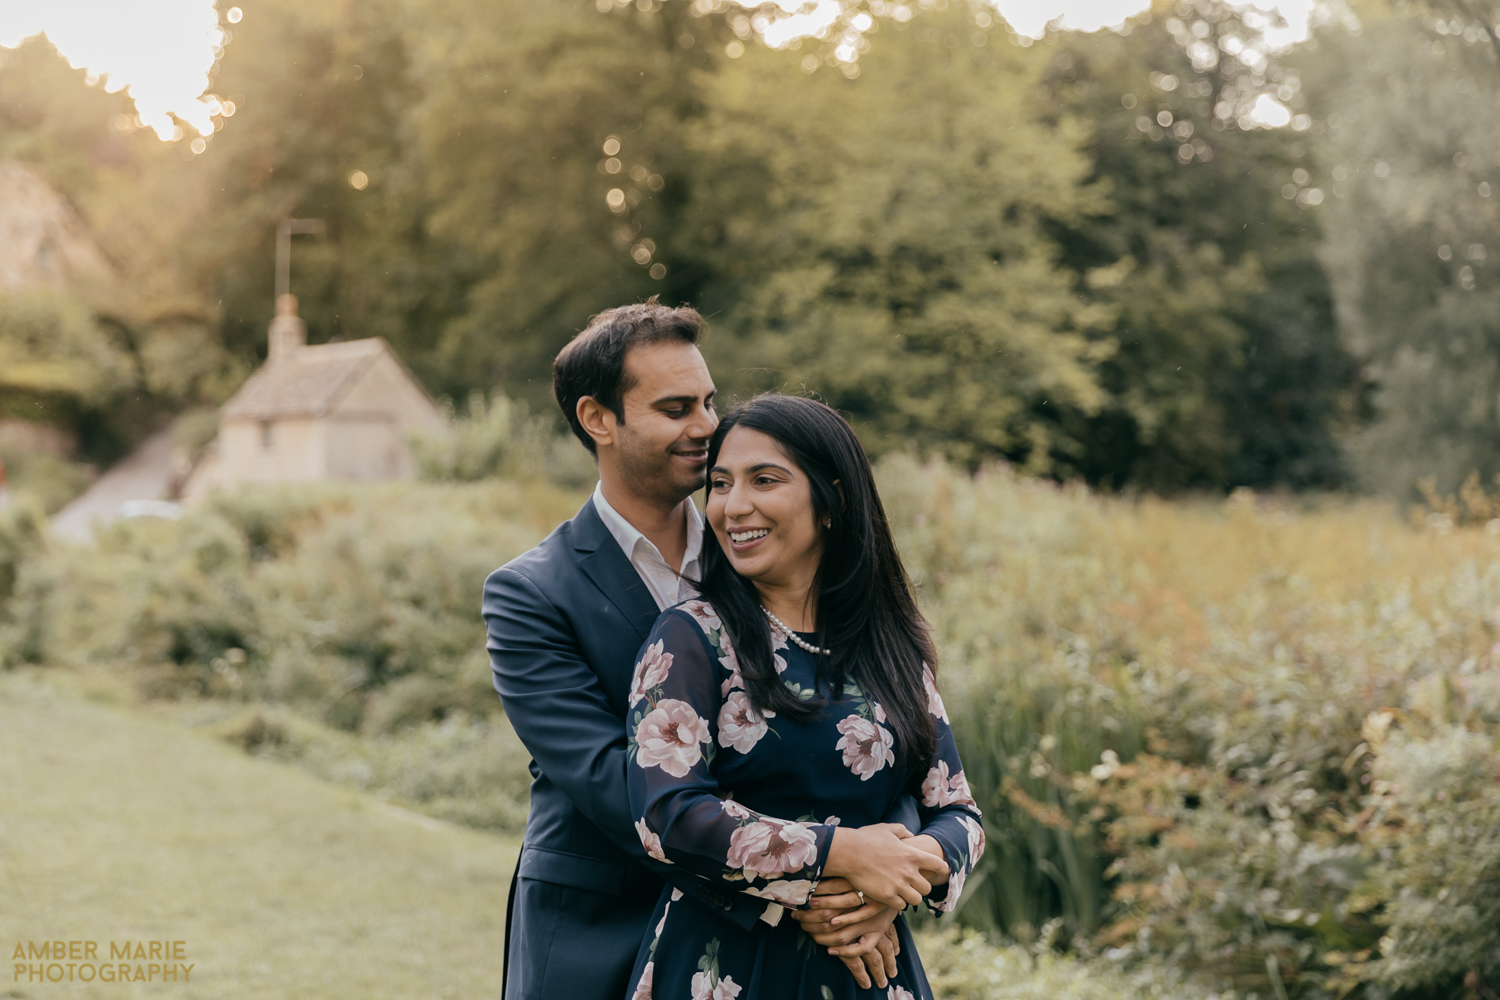 A relaxed wedding portrait of a couple. The groom is wrapping his arms around his wife as she smiles. Standing in front of a wild meadow in The Cotswolds.